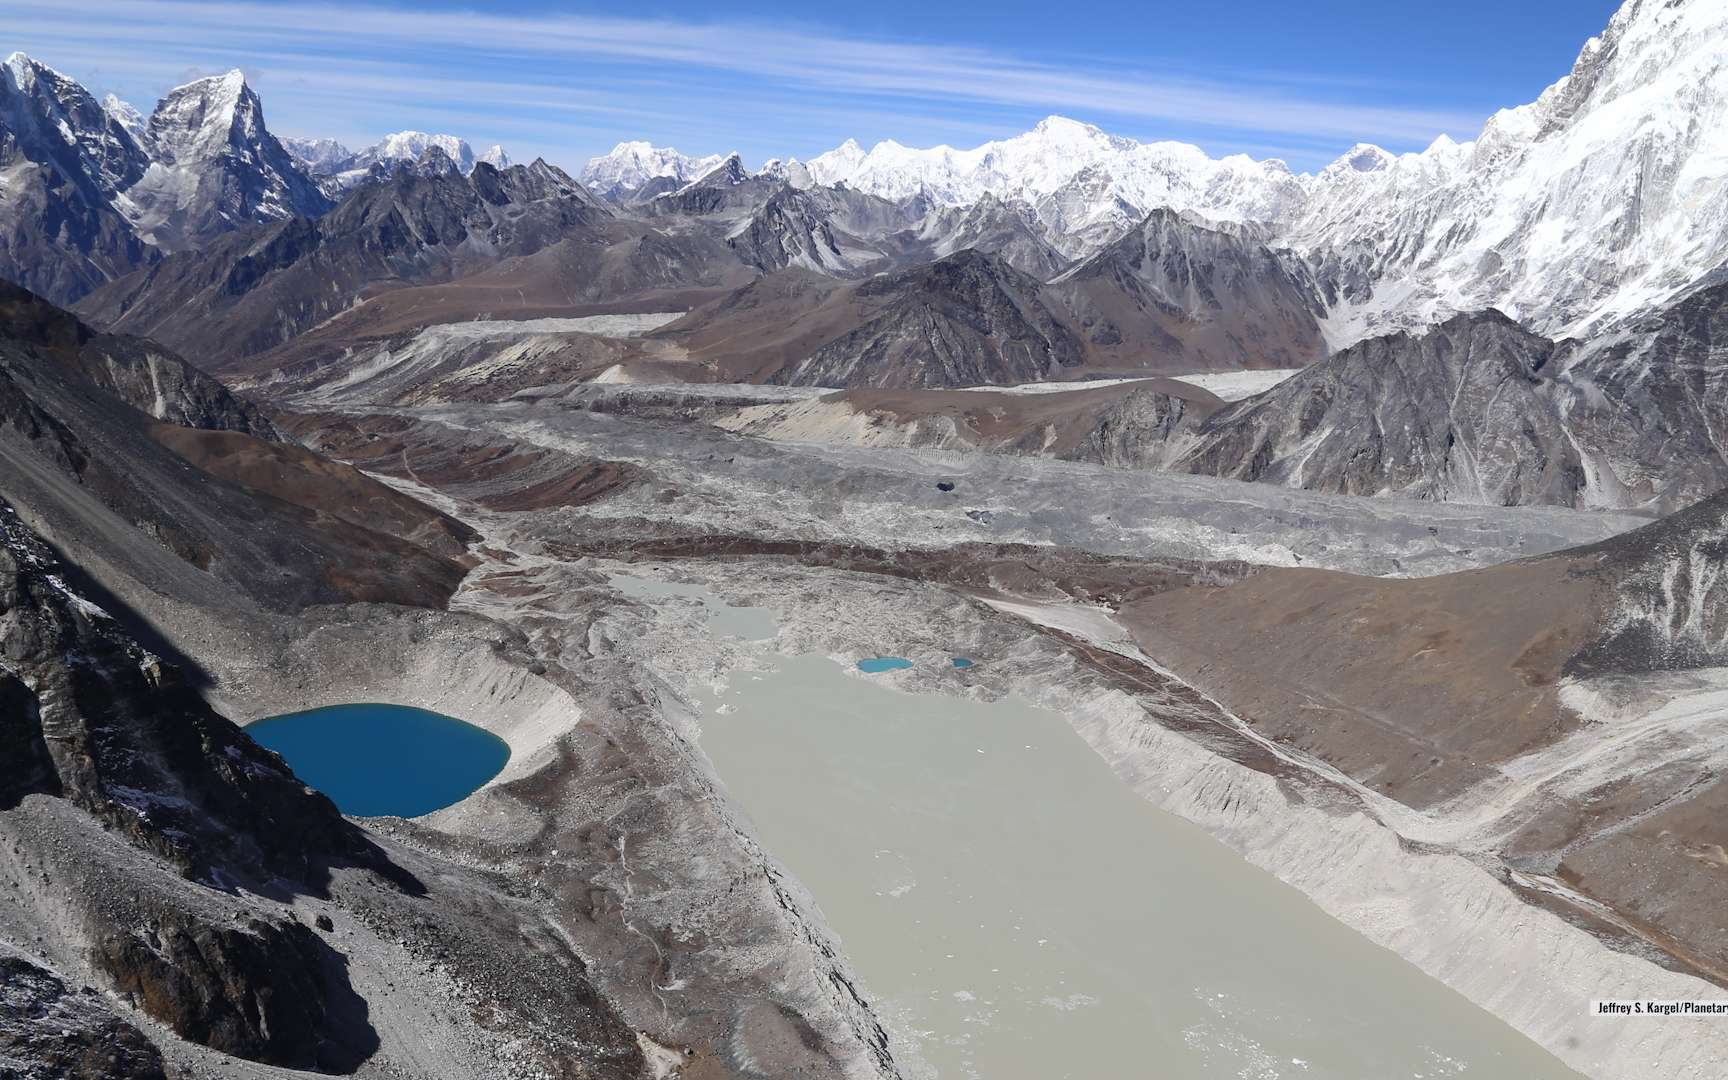 Le lac glaciaire Imja, près du mont Everest. © Planetary Science Institute, Jeffrey S. Kargel